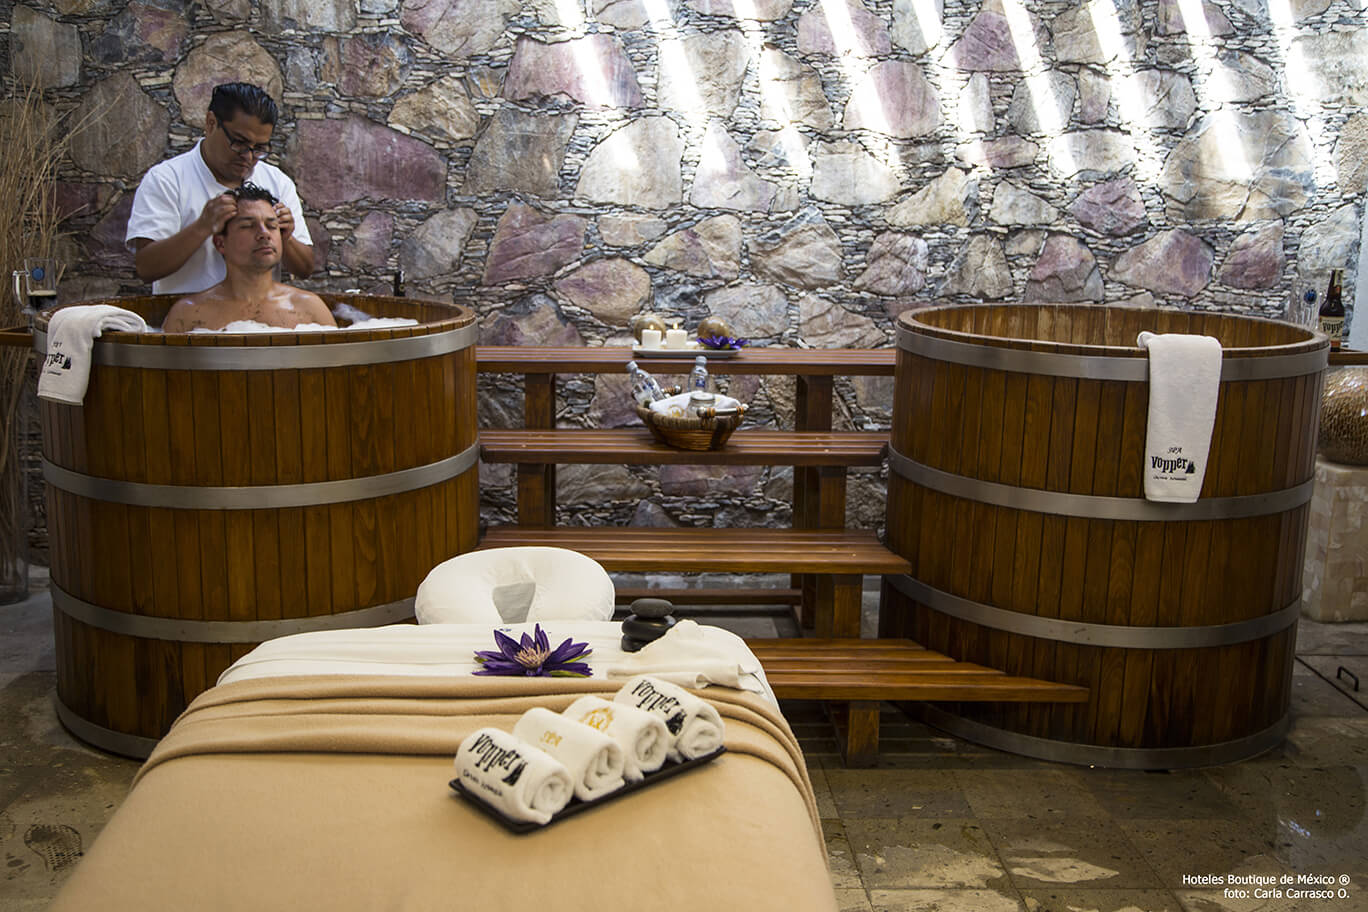 Hoteles-boutique-de-mexico-hotel-casa-diamante-spa-vopper